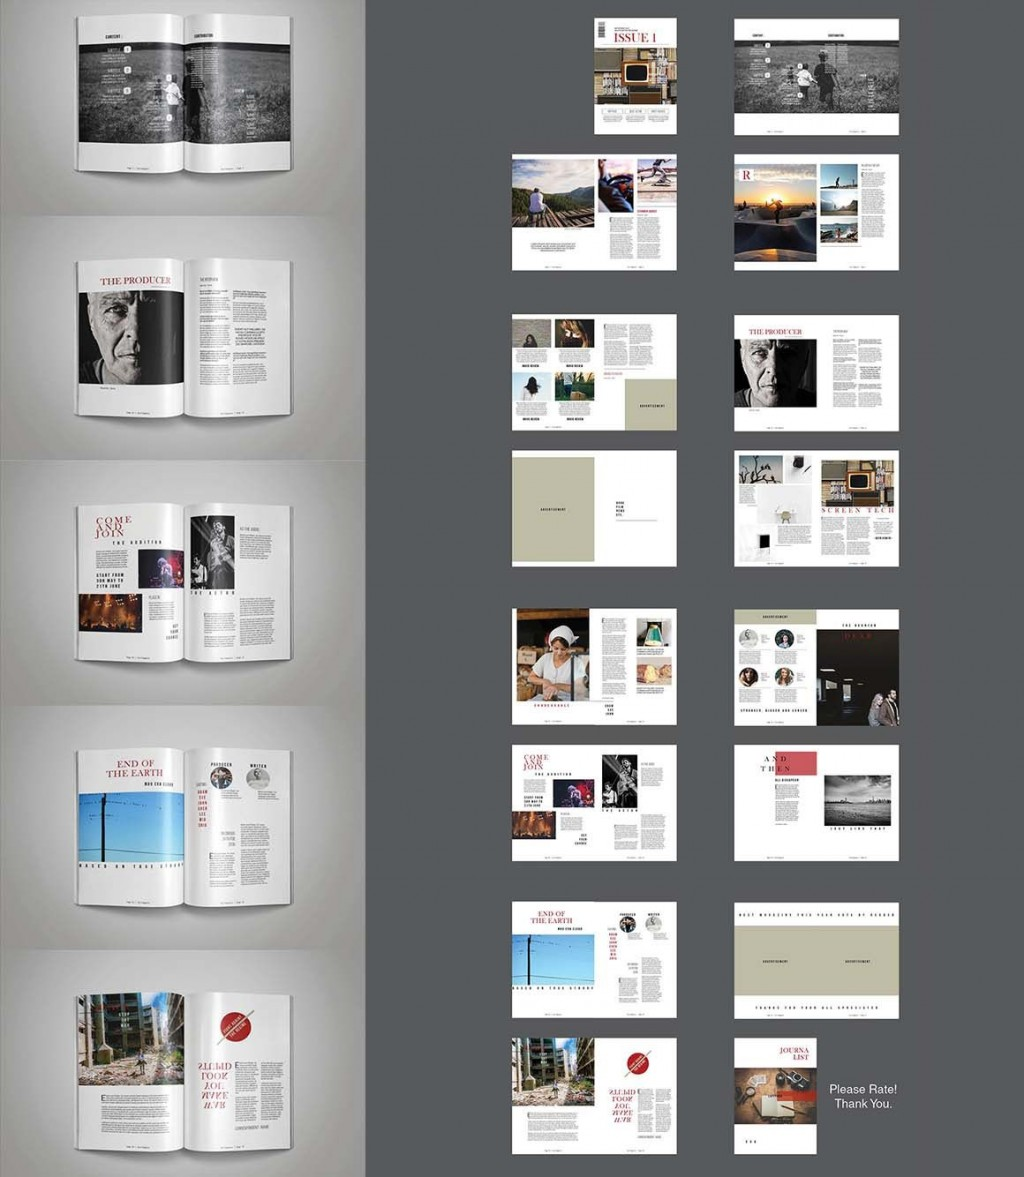 009 Stupendou Indesign Magazine Template Free High Resolution  Cover Download Indd Cs5Large